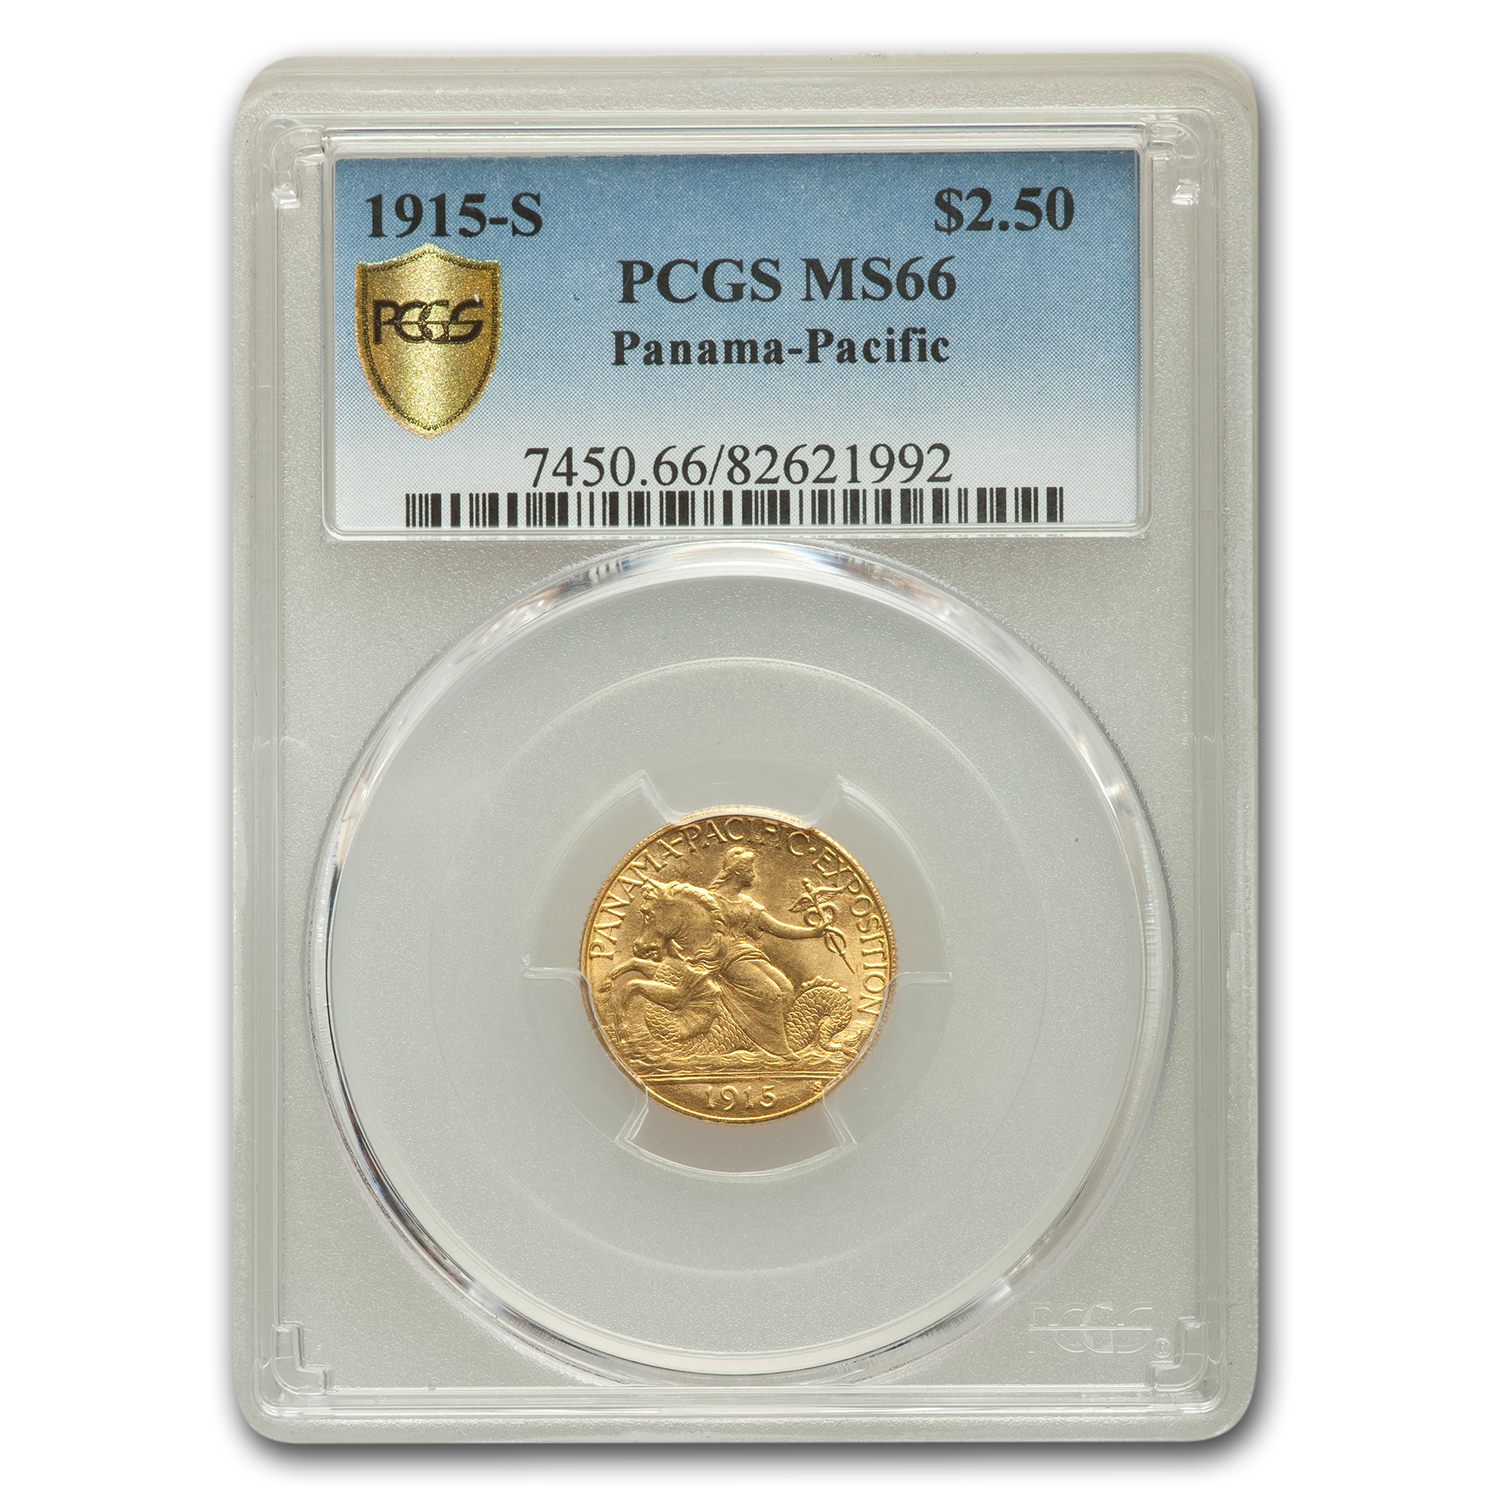 1915-S Gold $2.50 Panama-Pacific MS-66 PCGS